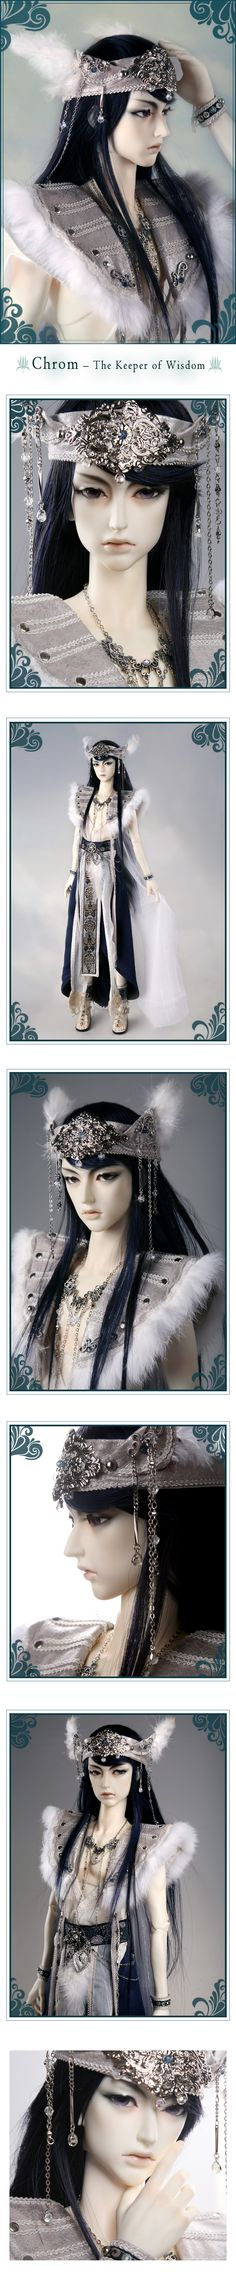 the SOOM emporium Chrom – The Keeper of Wisdom #bjd